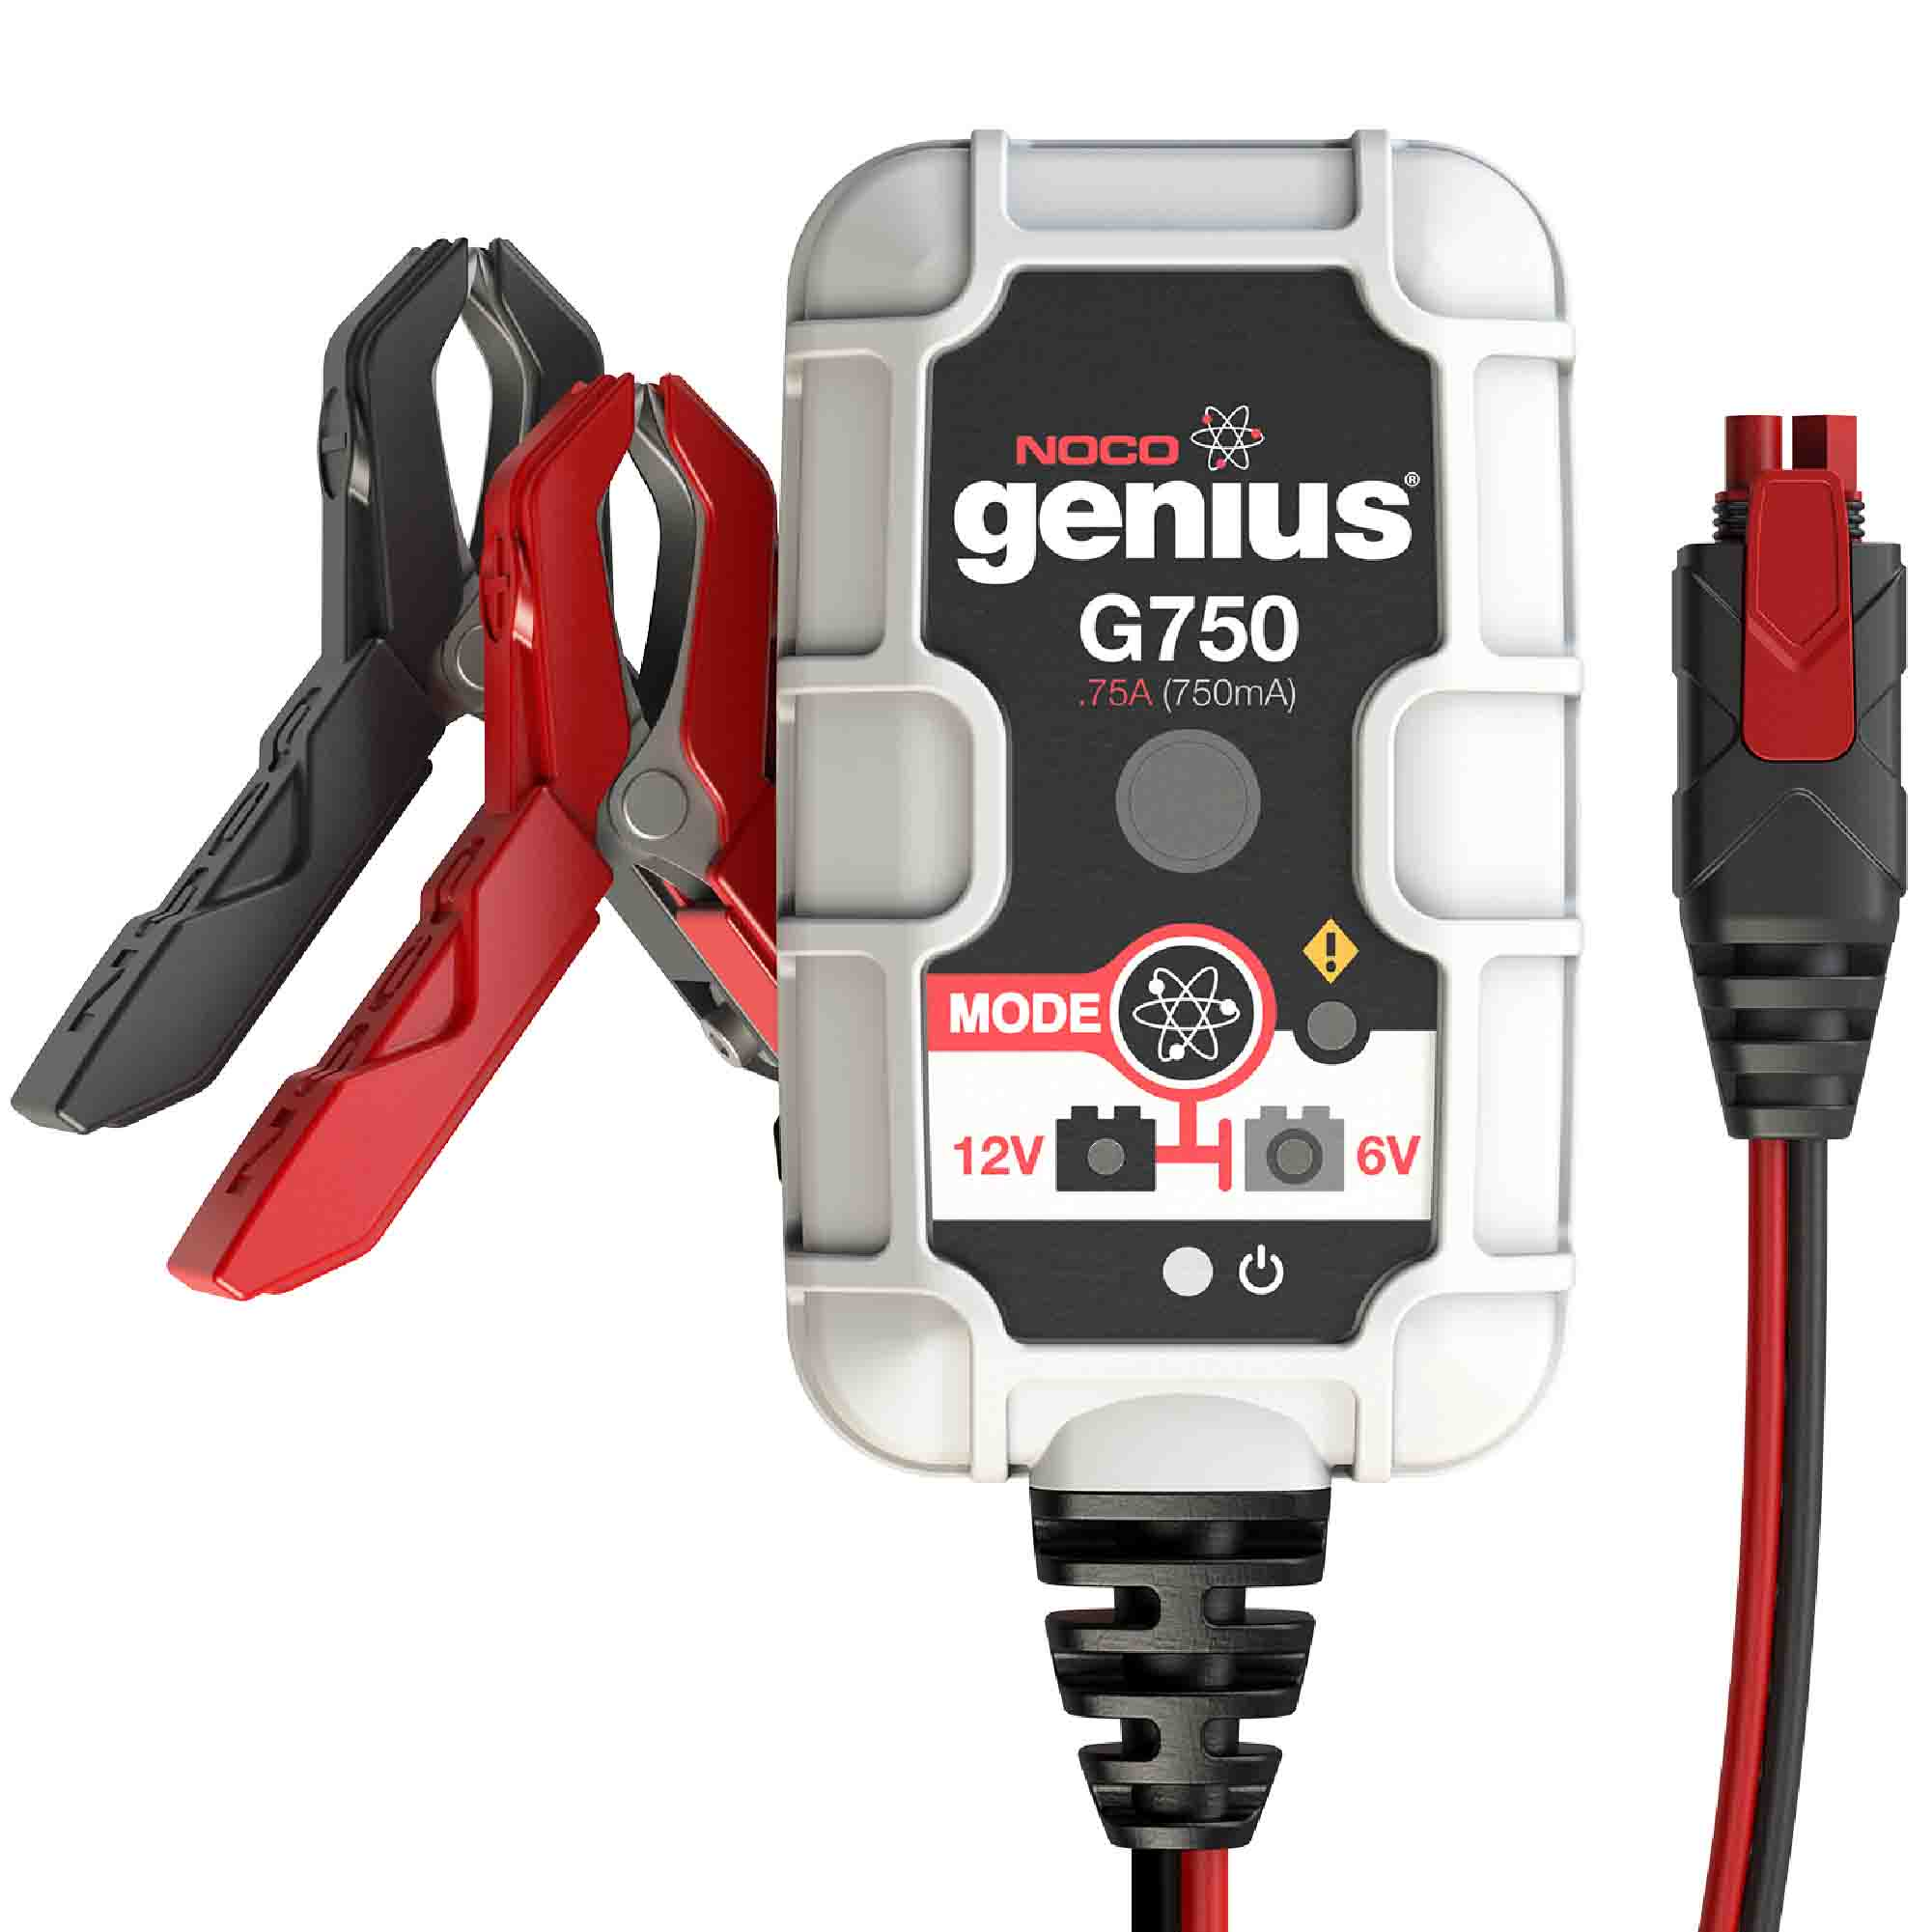 NOCO Genius G750 6V12V .75 Amp Battery Charger and Maintainer